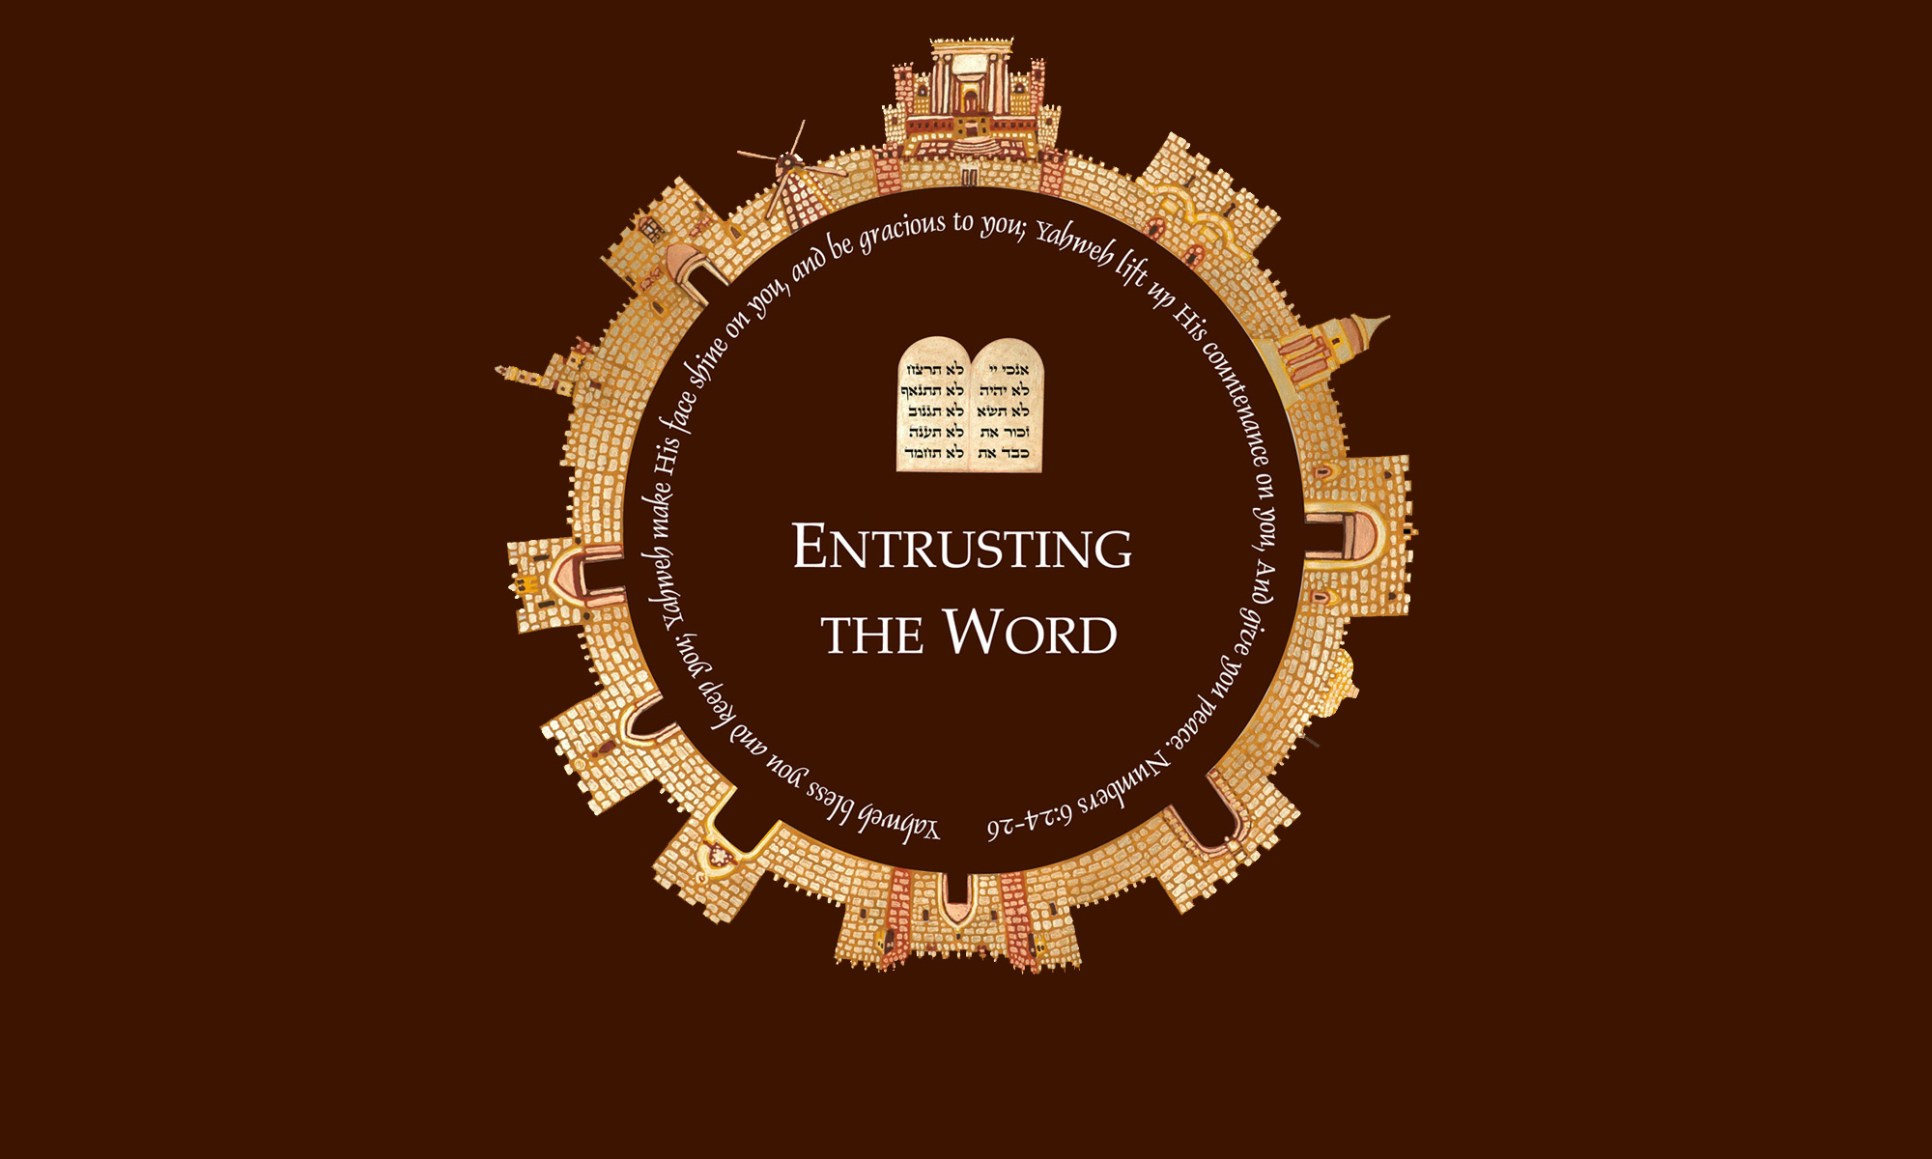 Entrusting the Word